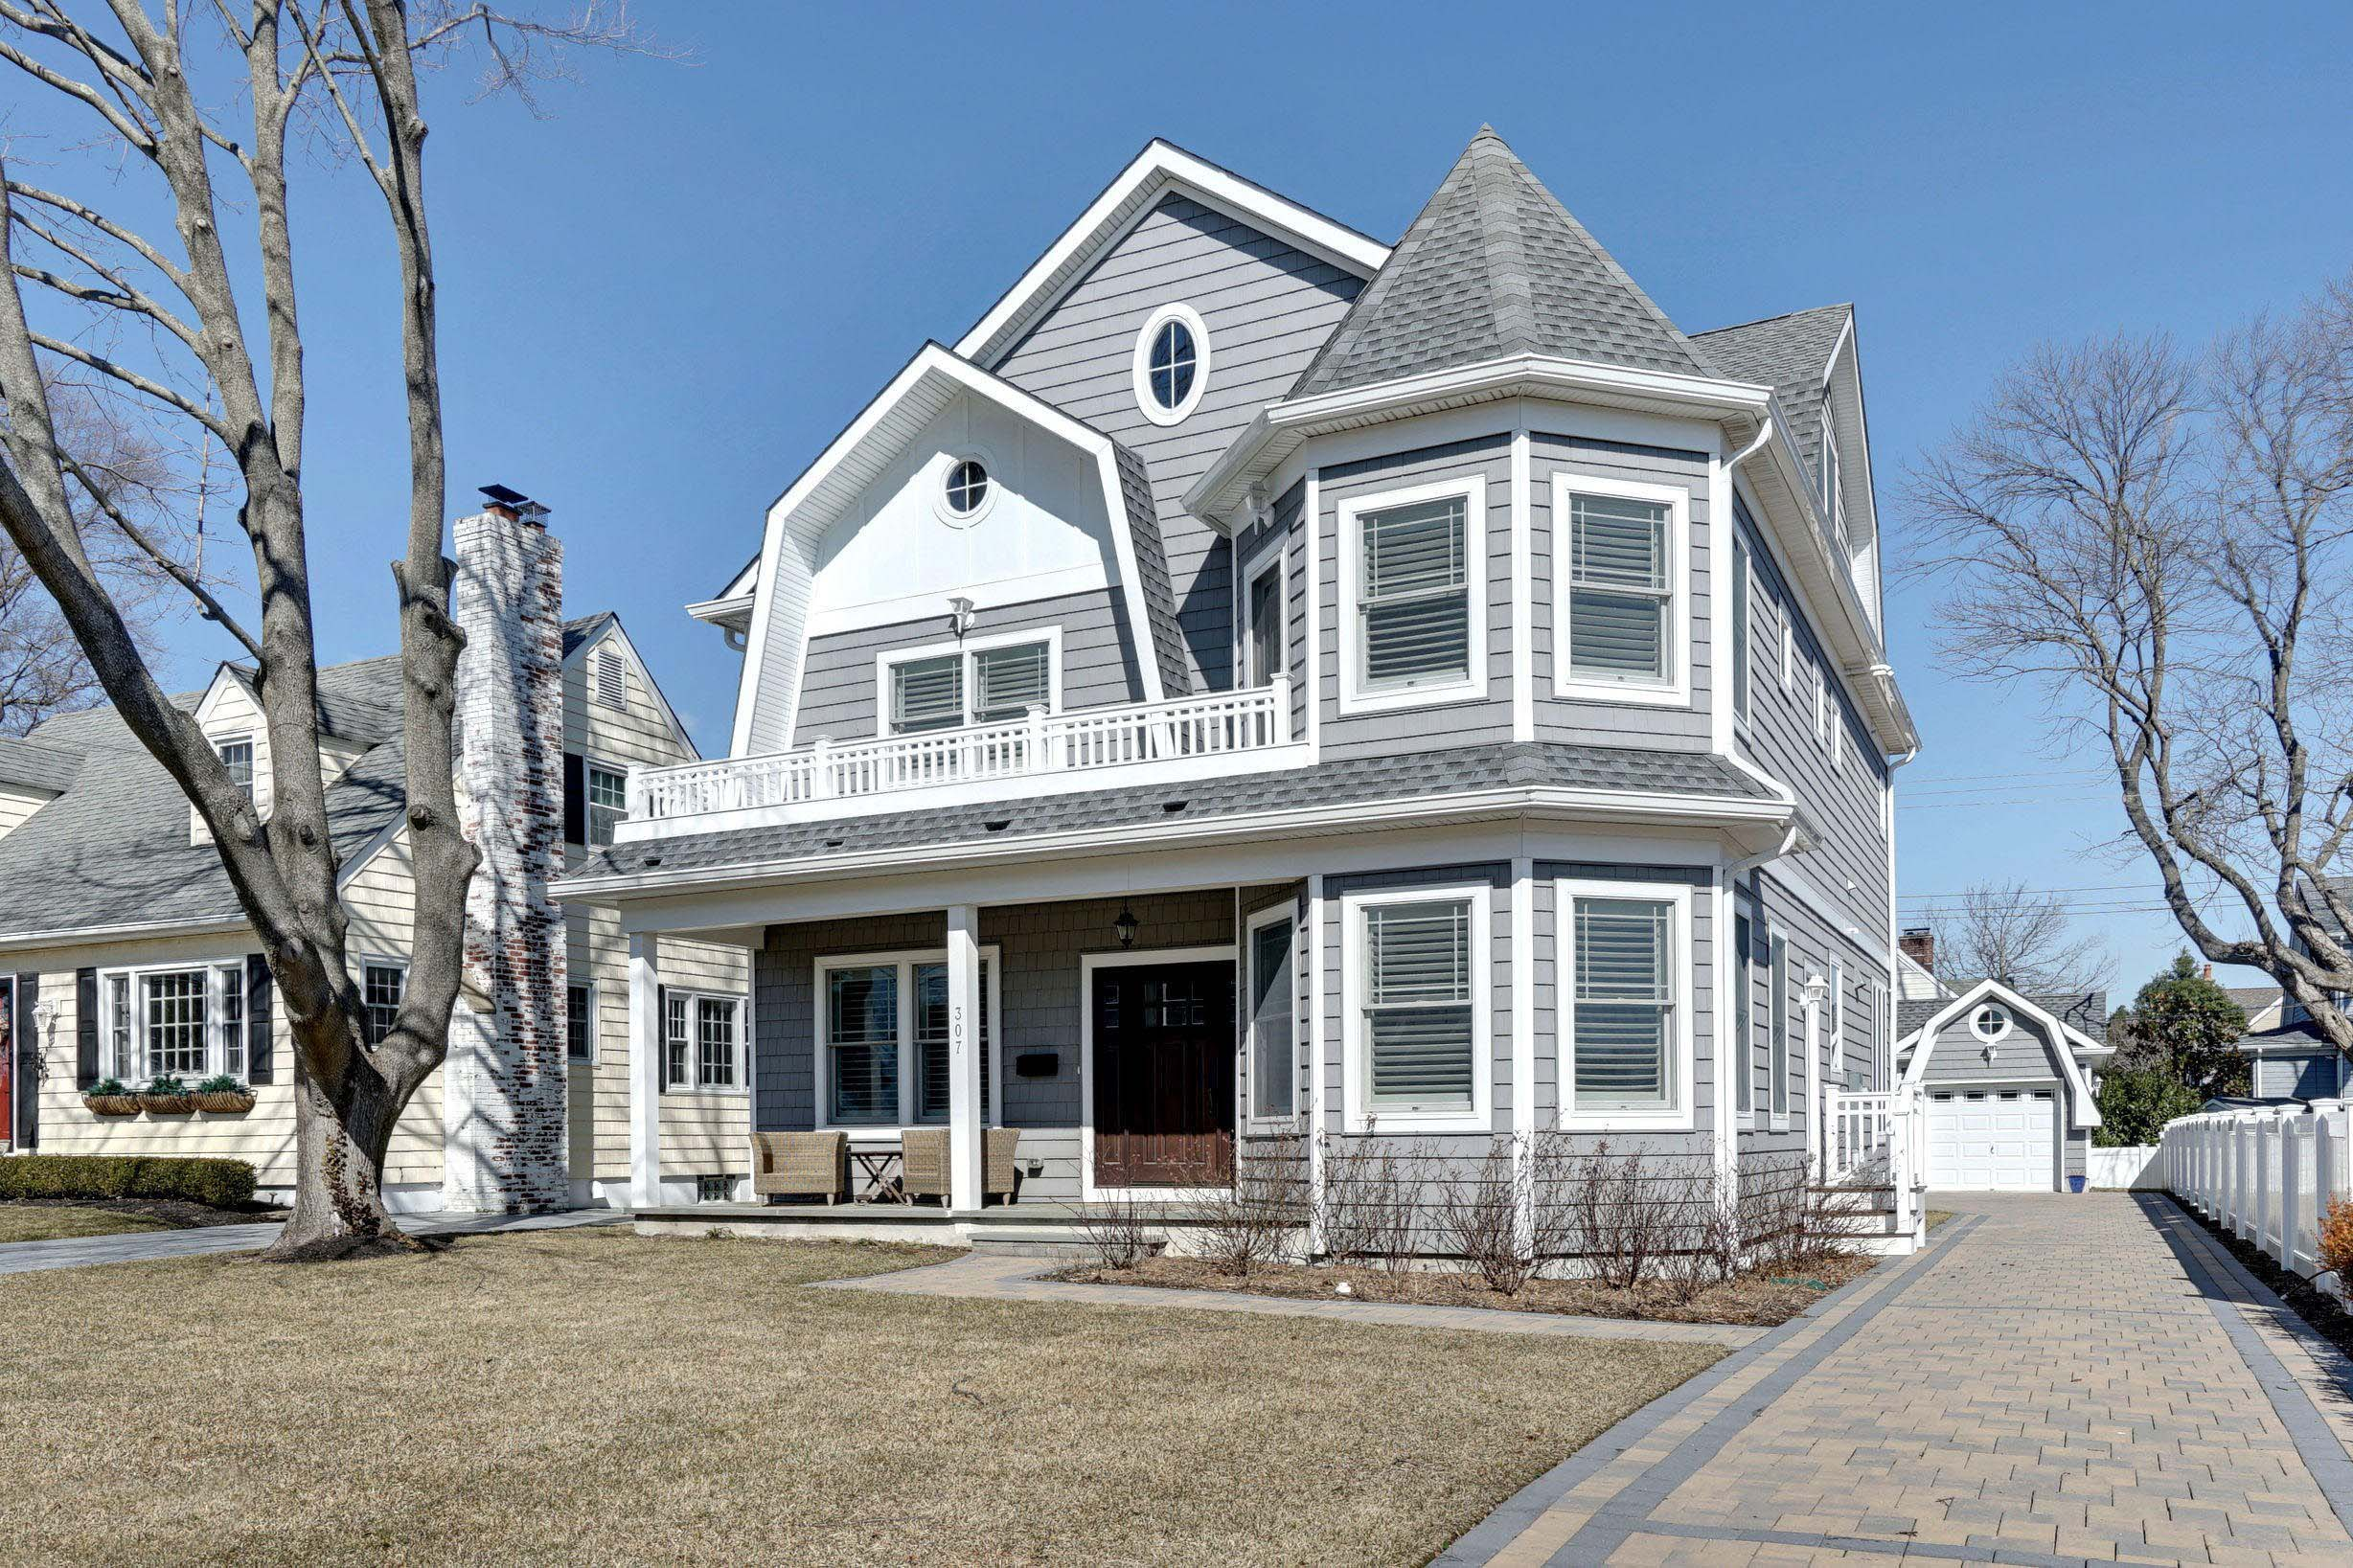 Gray viny siding color with white trim and wall paneling. Dark brown stained wood front door. White railings. Gray shingled roof. Paver driveway. Gray decking.